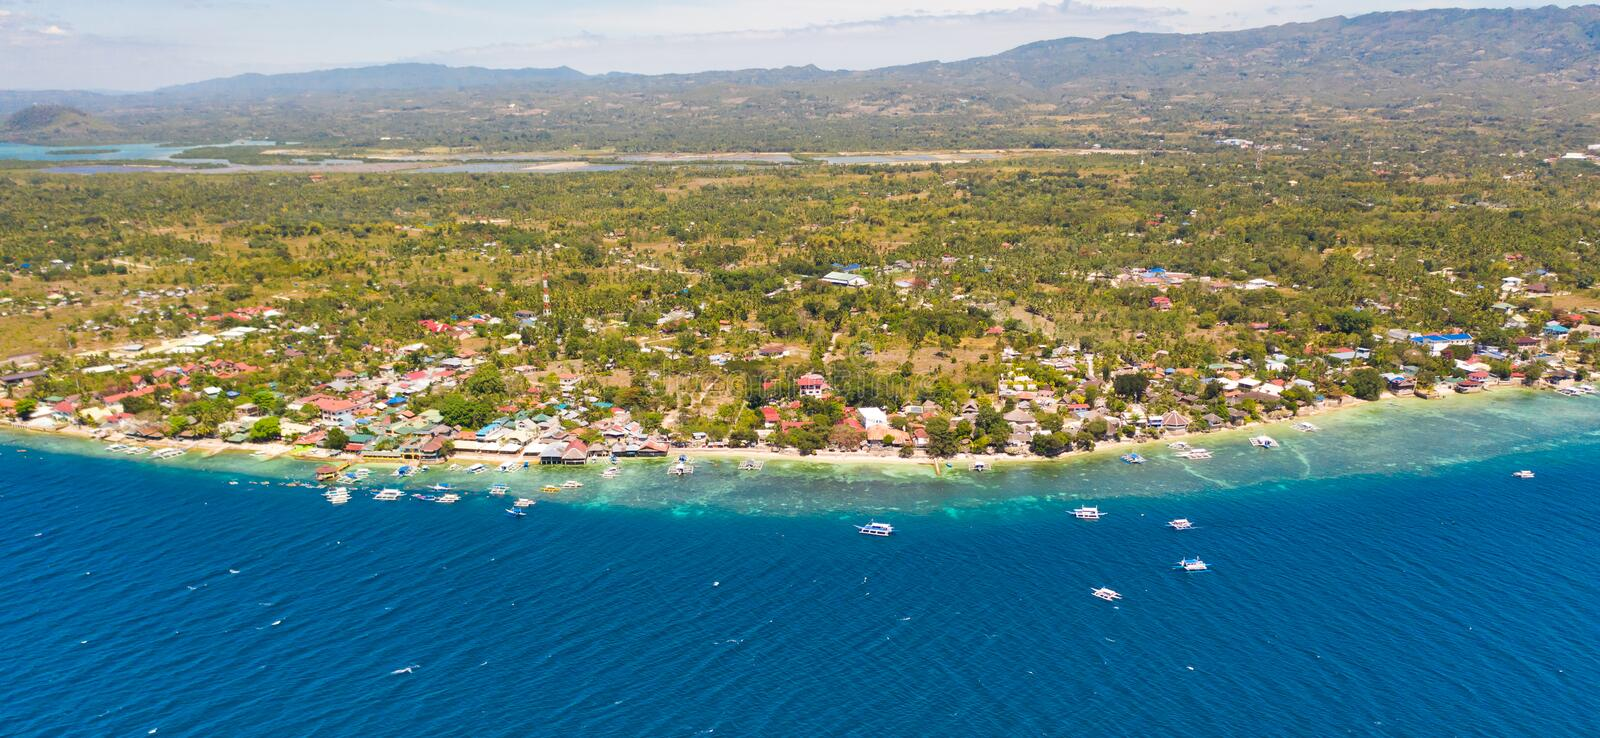 Coast of Cebu island, Moalboal, Philippines, top view. Philippine boats in a blue lagoon over coral reefs. Moalboal is a great place for diving and vacations stock photos